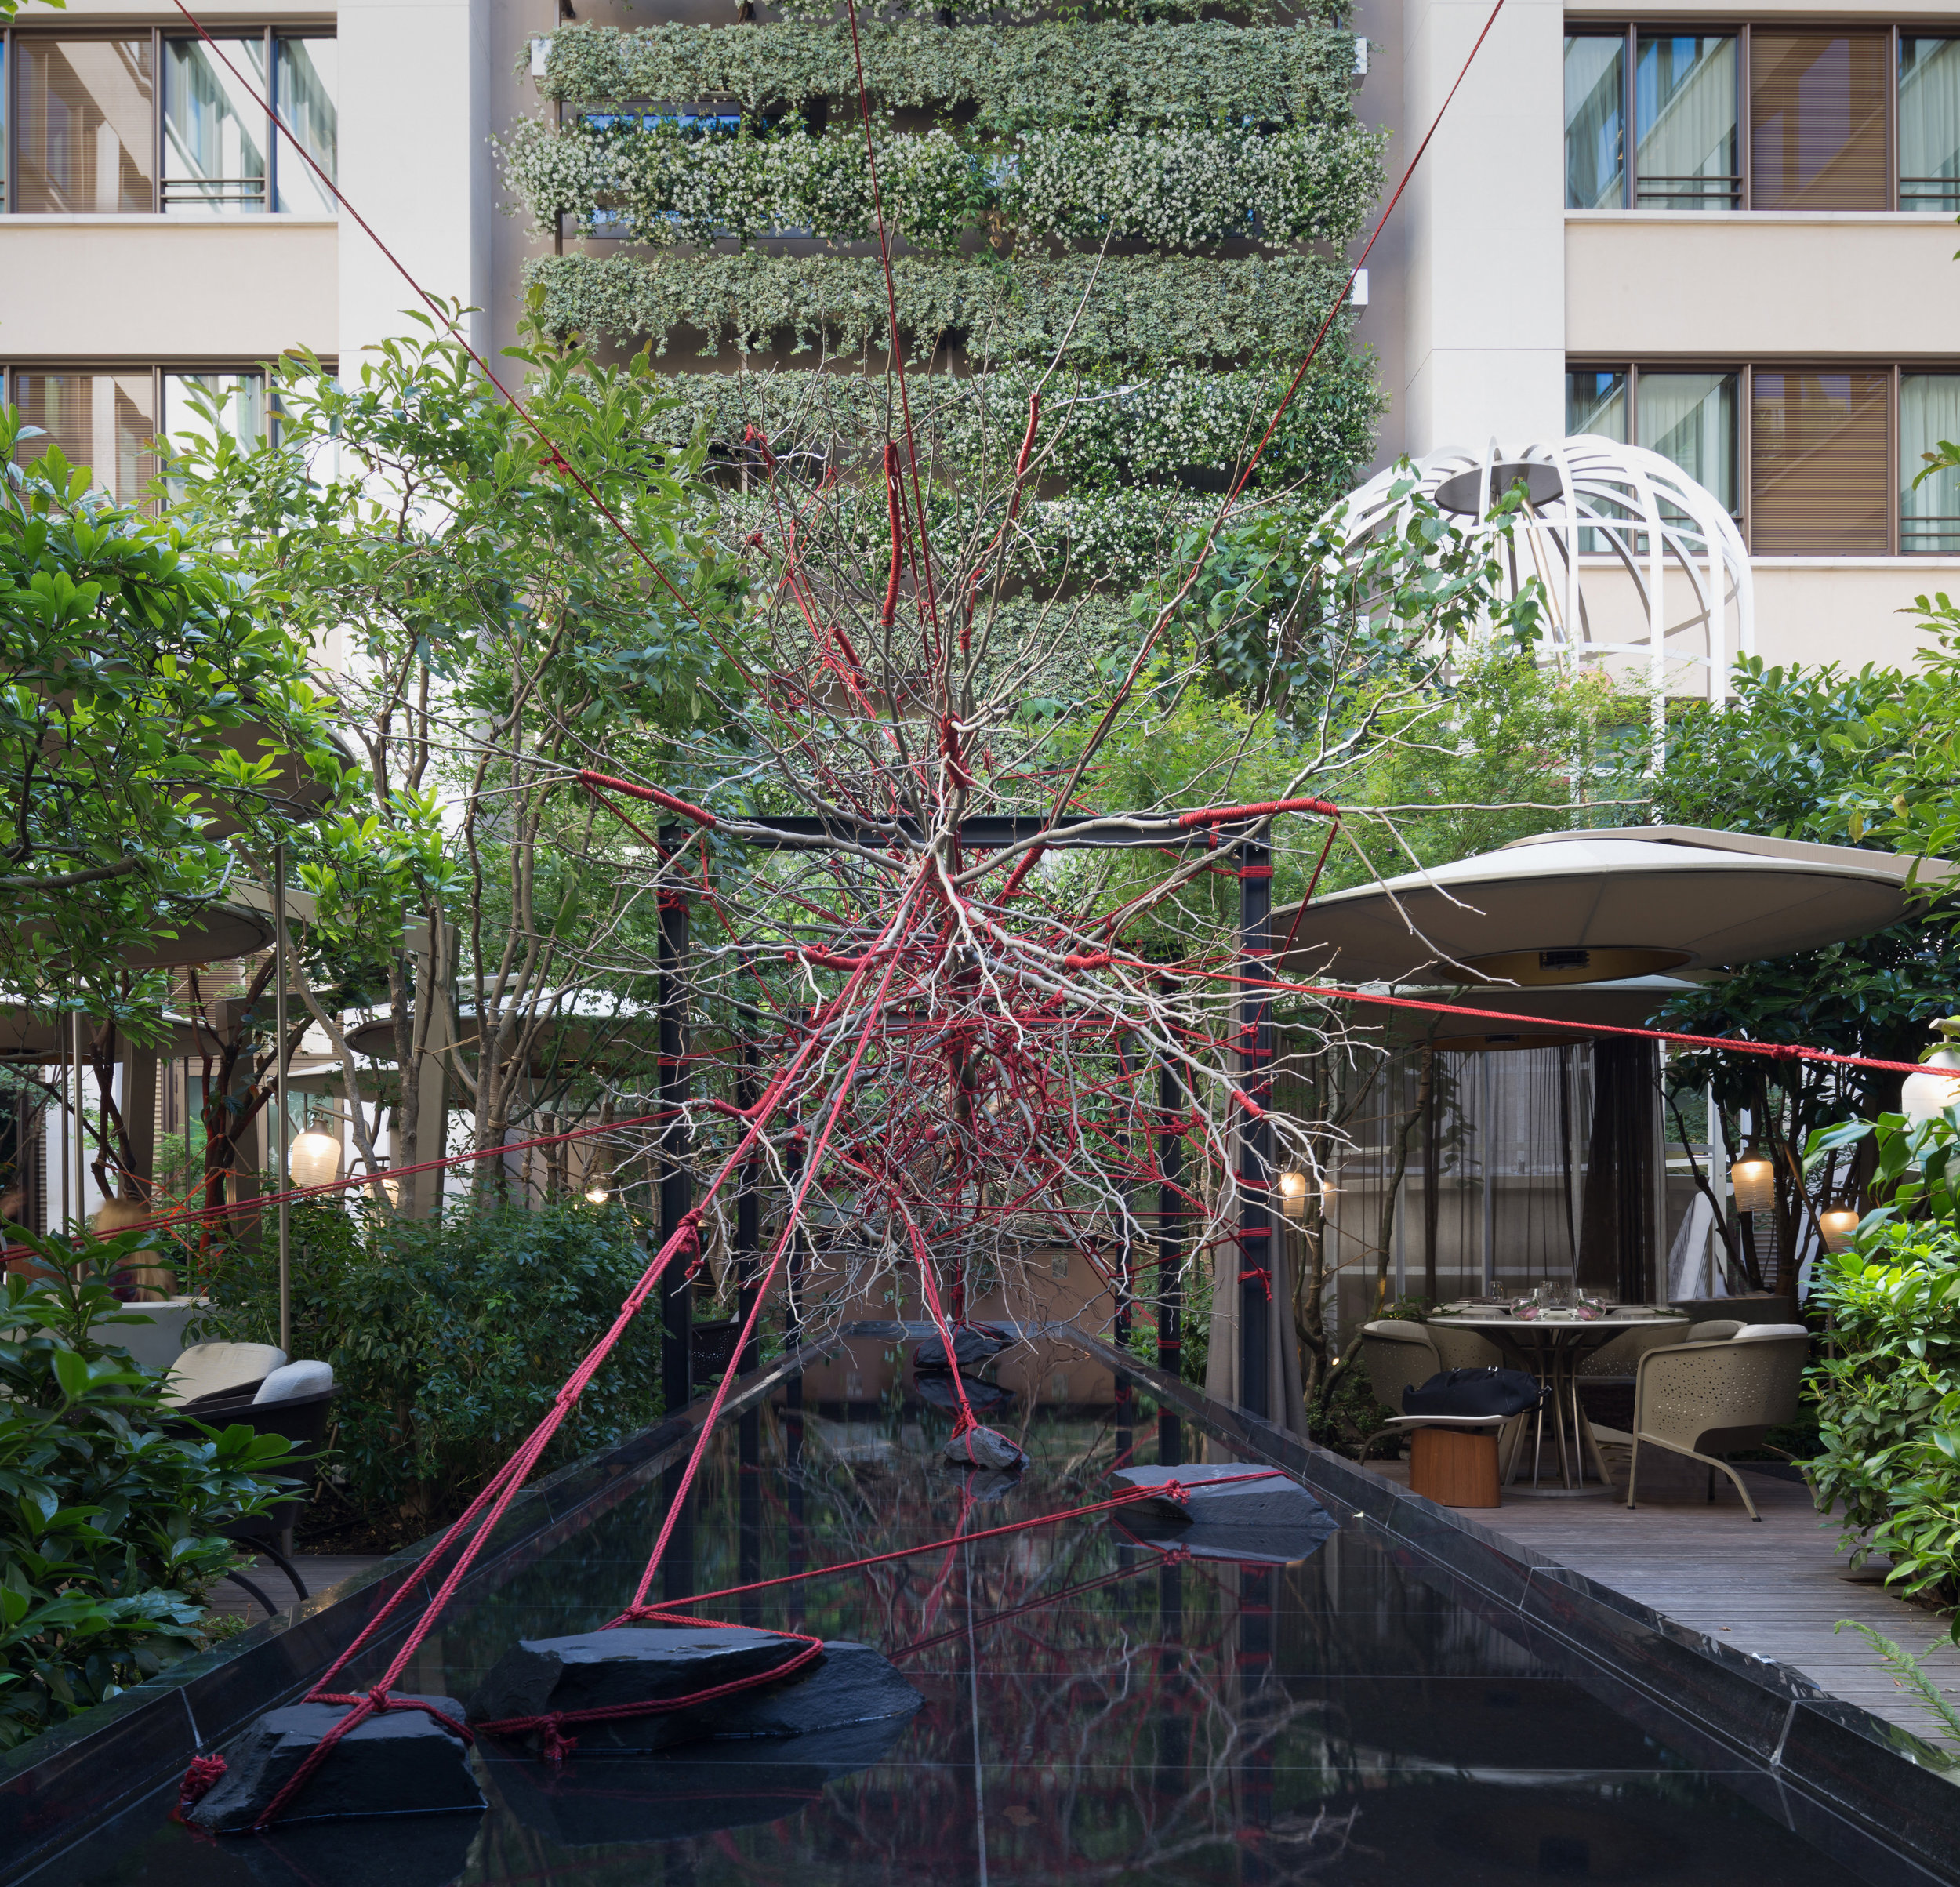 hotel_mandarin_oriental_paris_terraces_gardens_art_installation_the_red_garden_christophe_gautrand_landscape_outdoor_designer_2.jpg